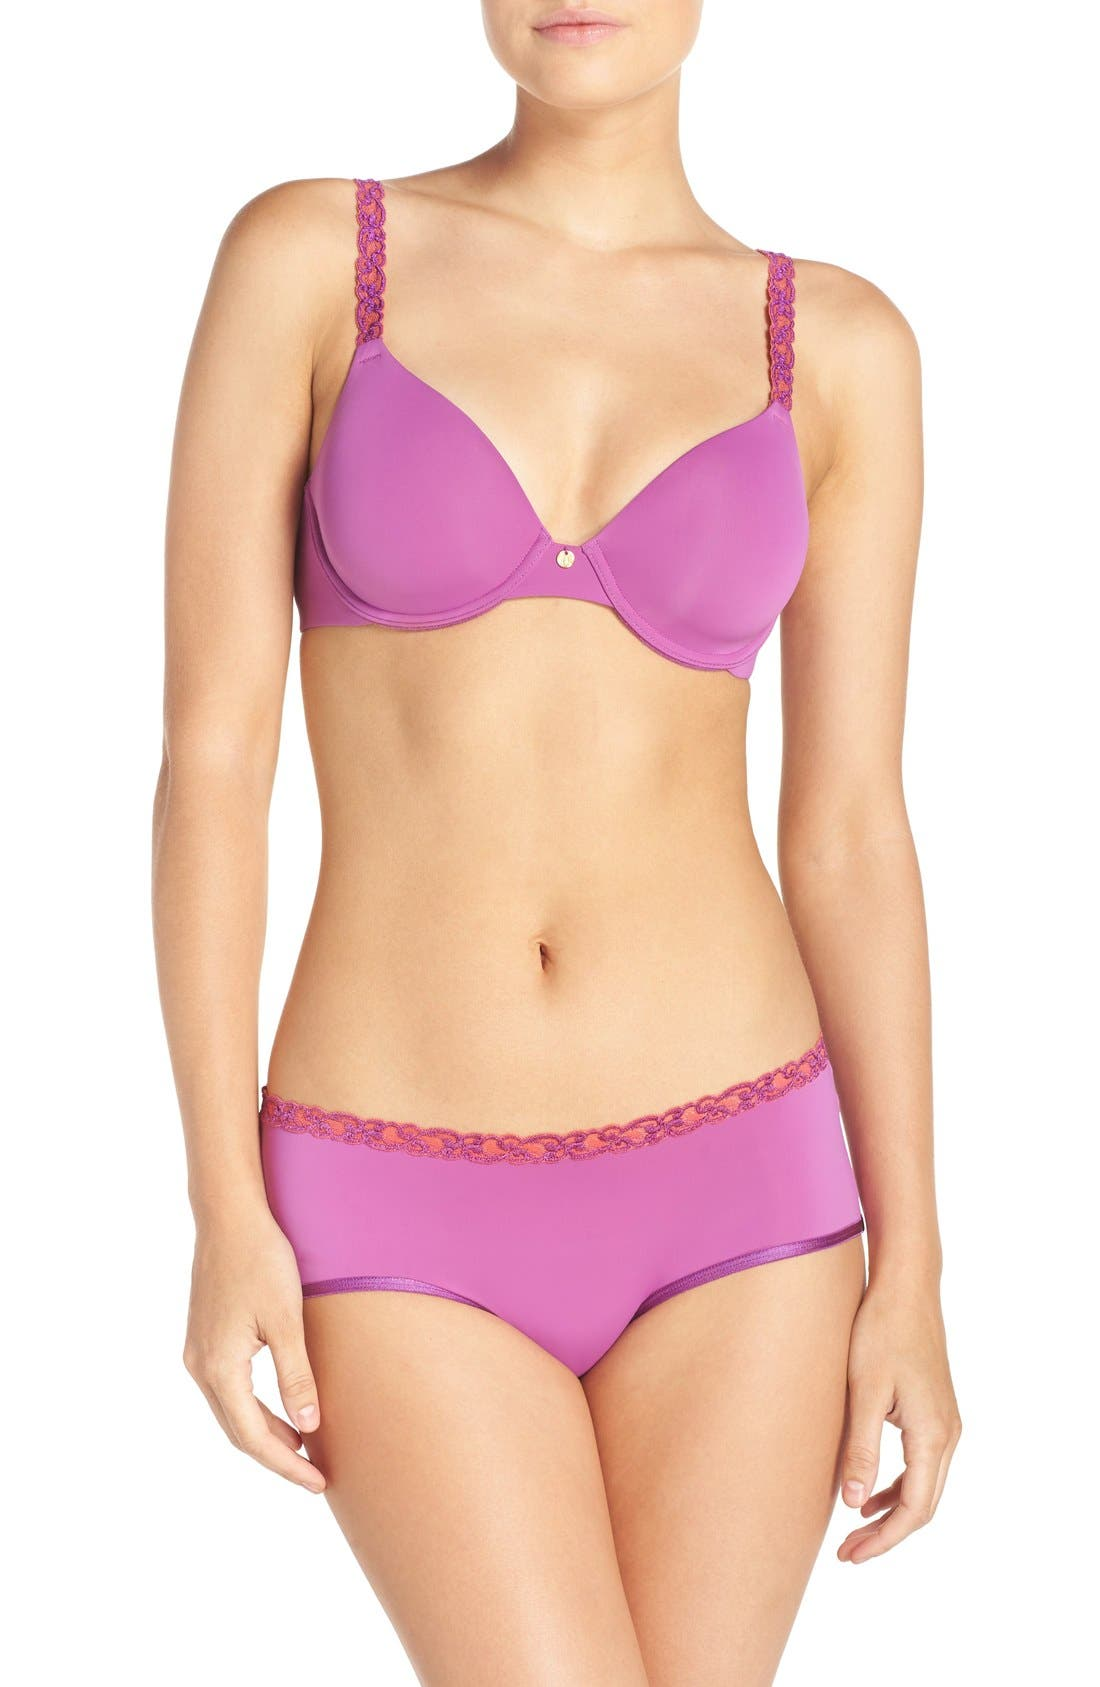 'Pure Luxe' Underwire T-Shirt Bra,                             Alternate thumbnail 144, color,